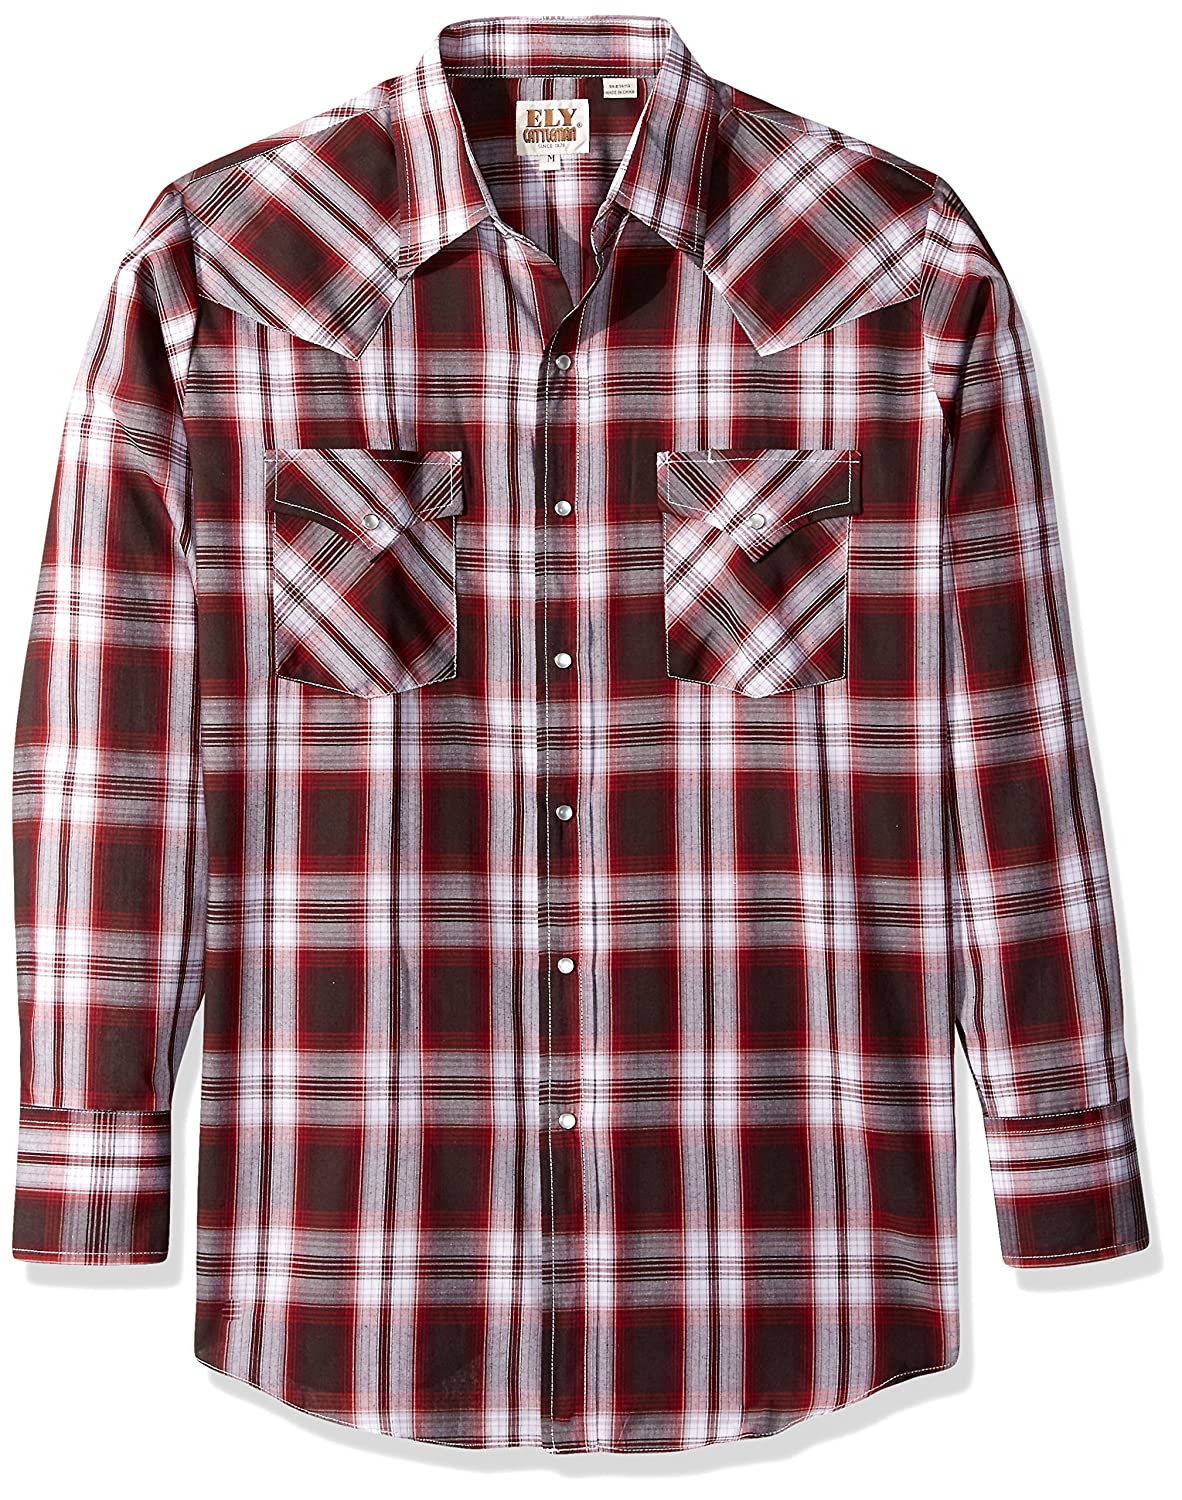 Ely & Walker Mens Standard Long Sleeve Plaid Western Shirt Ely & Walker Apparel 1533707-NVR